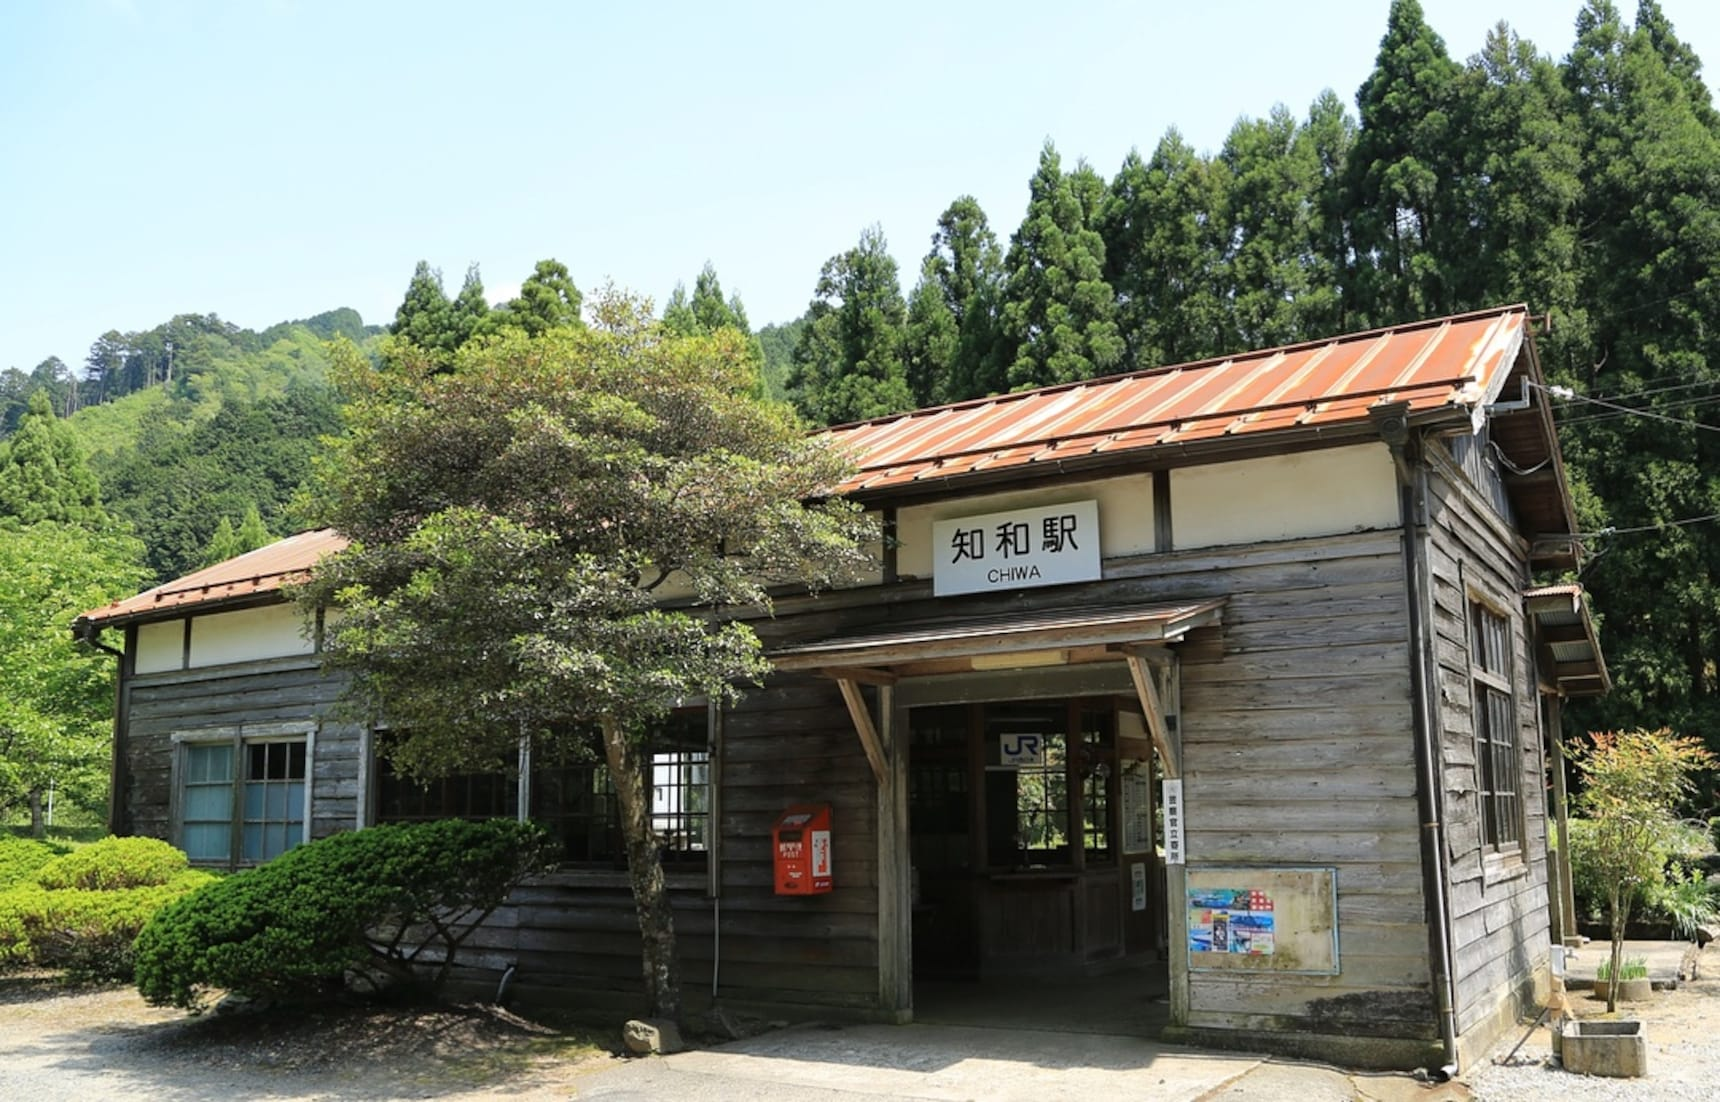 One of the Quaintest Train Stations in Japan